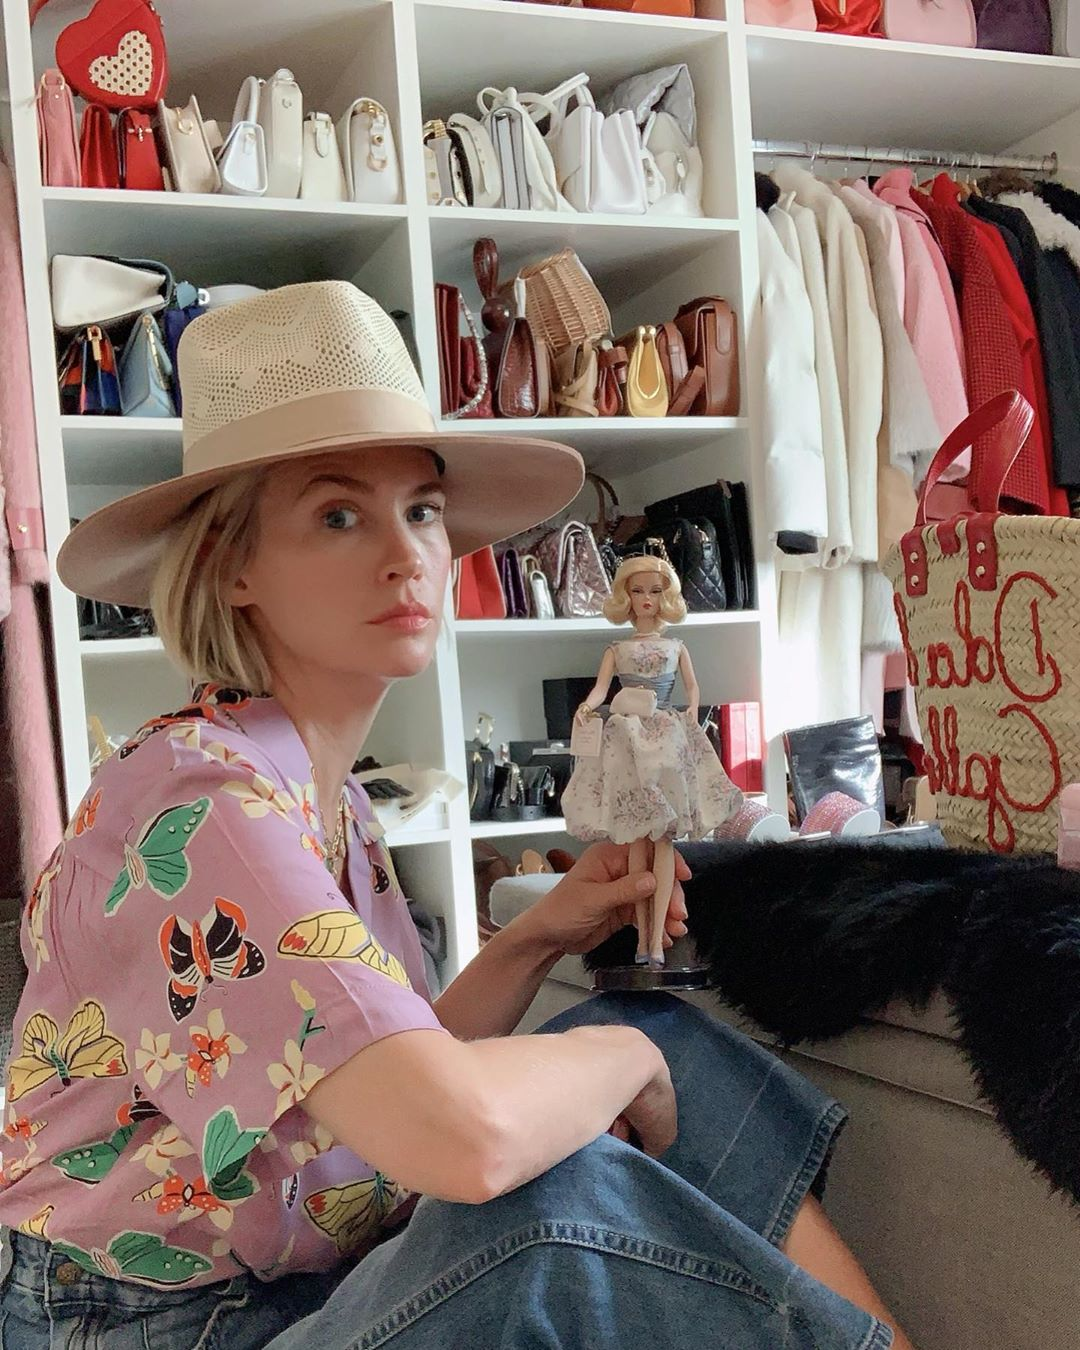 """""""Just playing with my Barbie, dreaming about wearing uncomfortable shoes and clothes again..."""" the Mad Men actress joked, sharing a photo of herself hanging out in her walk-in closet amid the coronavirus pandemic.                             She also added a funny hashtag: """"#someoneneedsacreativeoutletasap."""""""